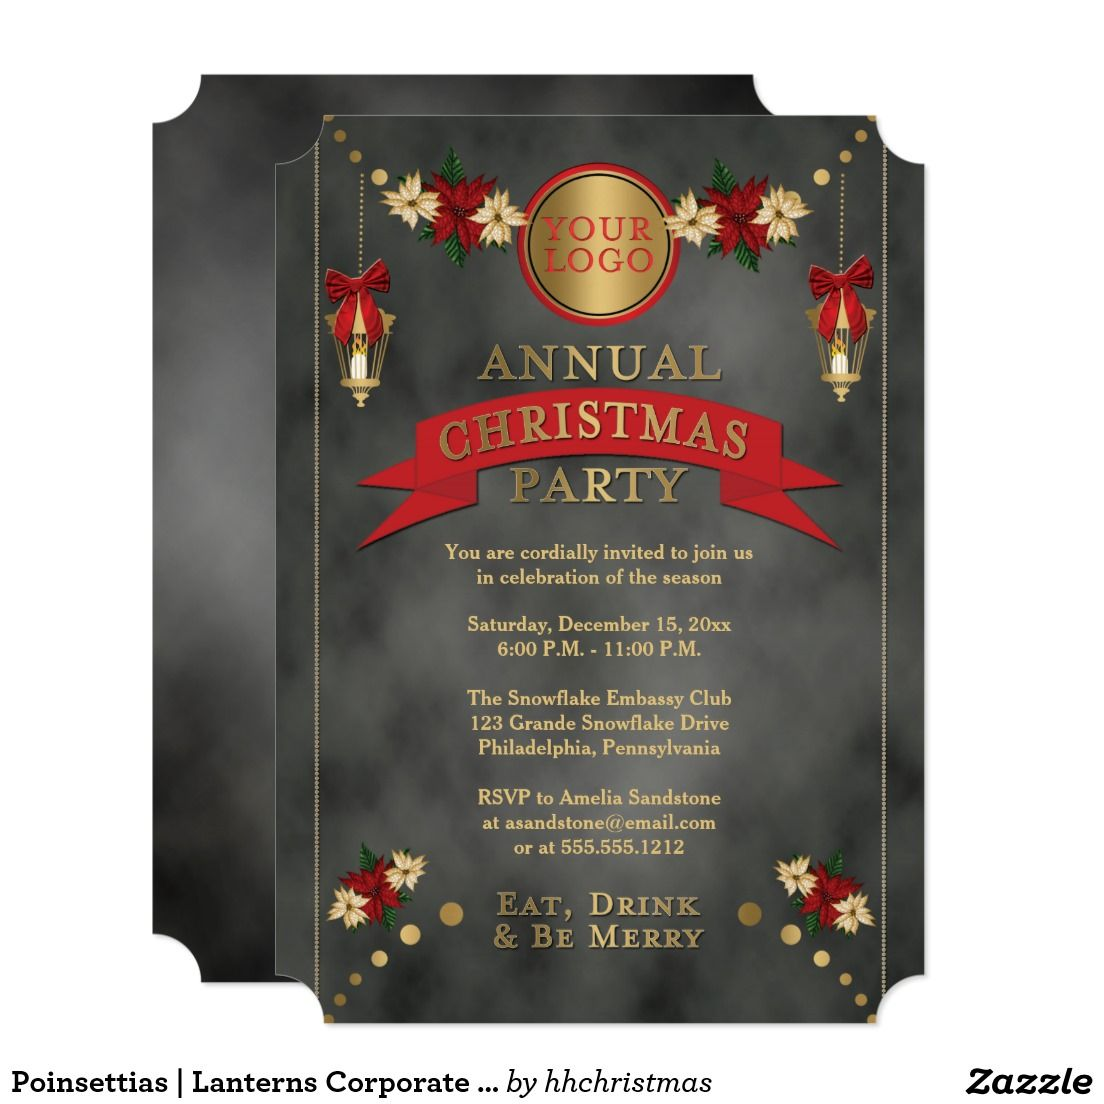 Poinsettias  Lanterns Corporate Christmas Party Card  Christmas